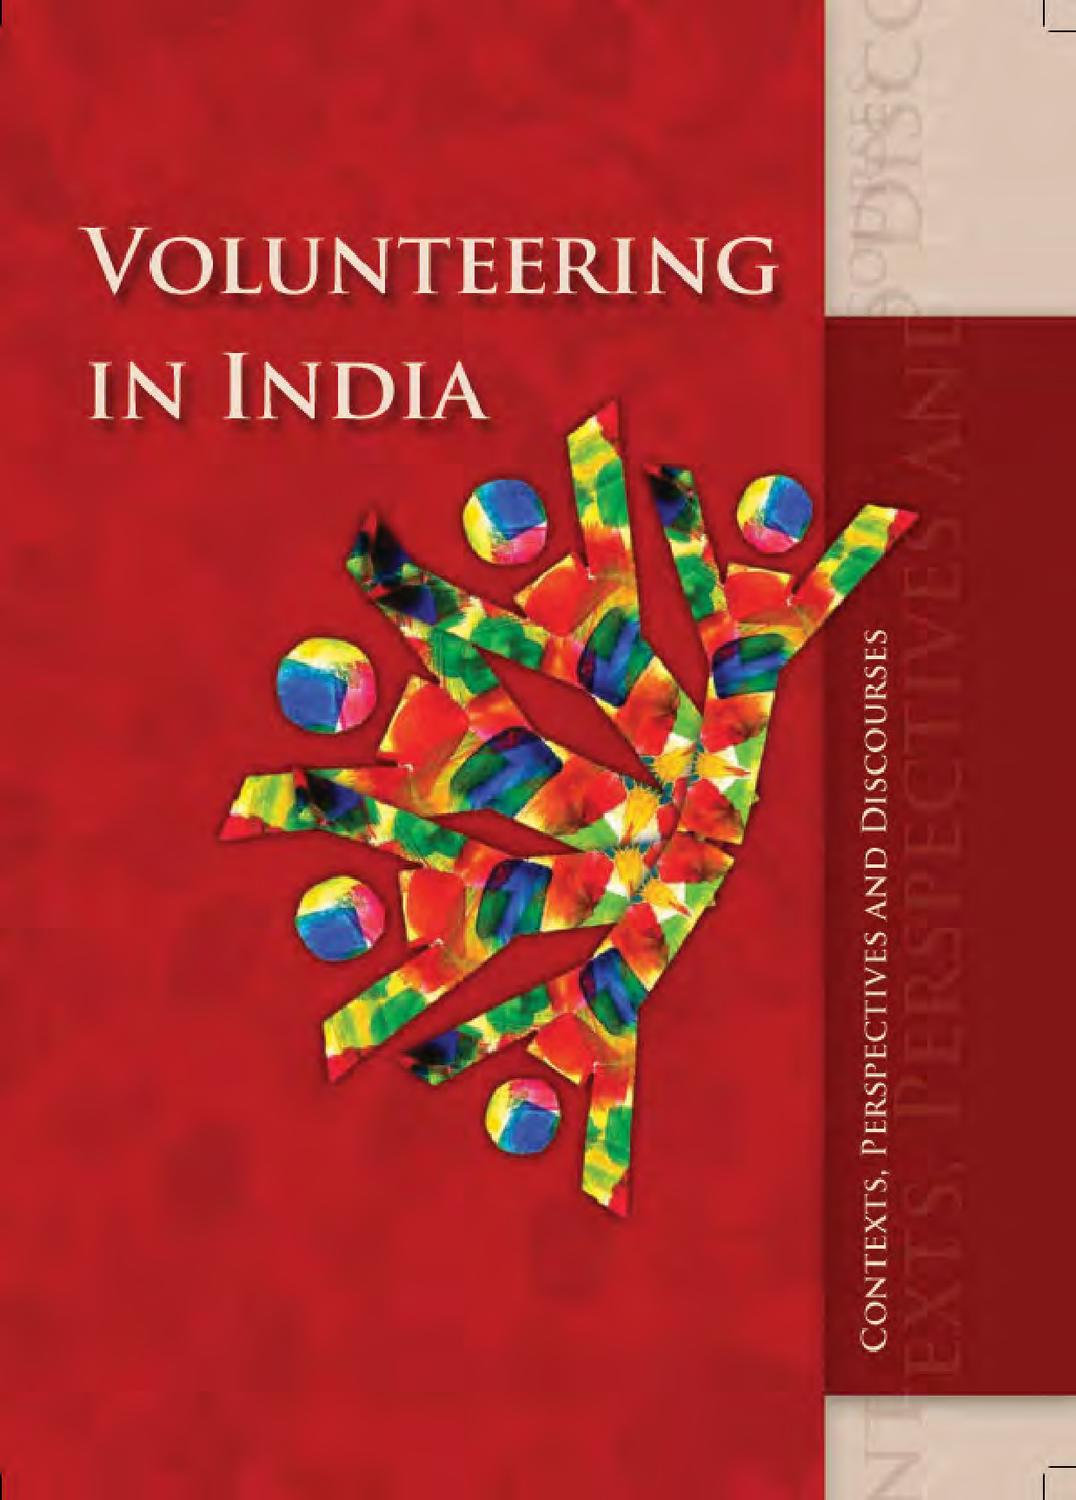 Volunteering in India: Contexts, Perspectives and Discourses